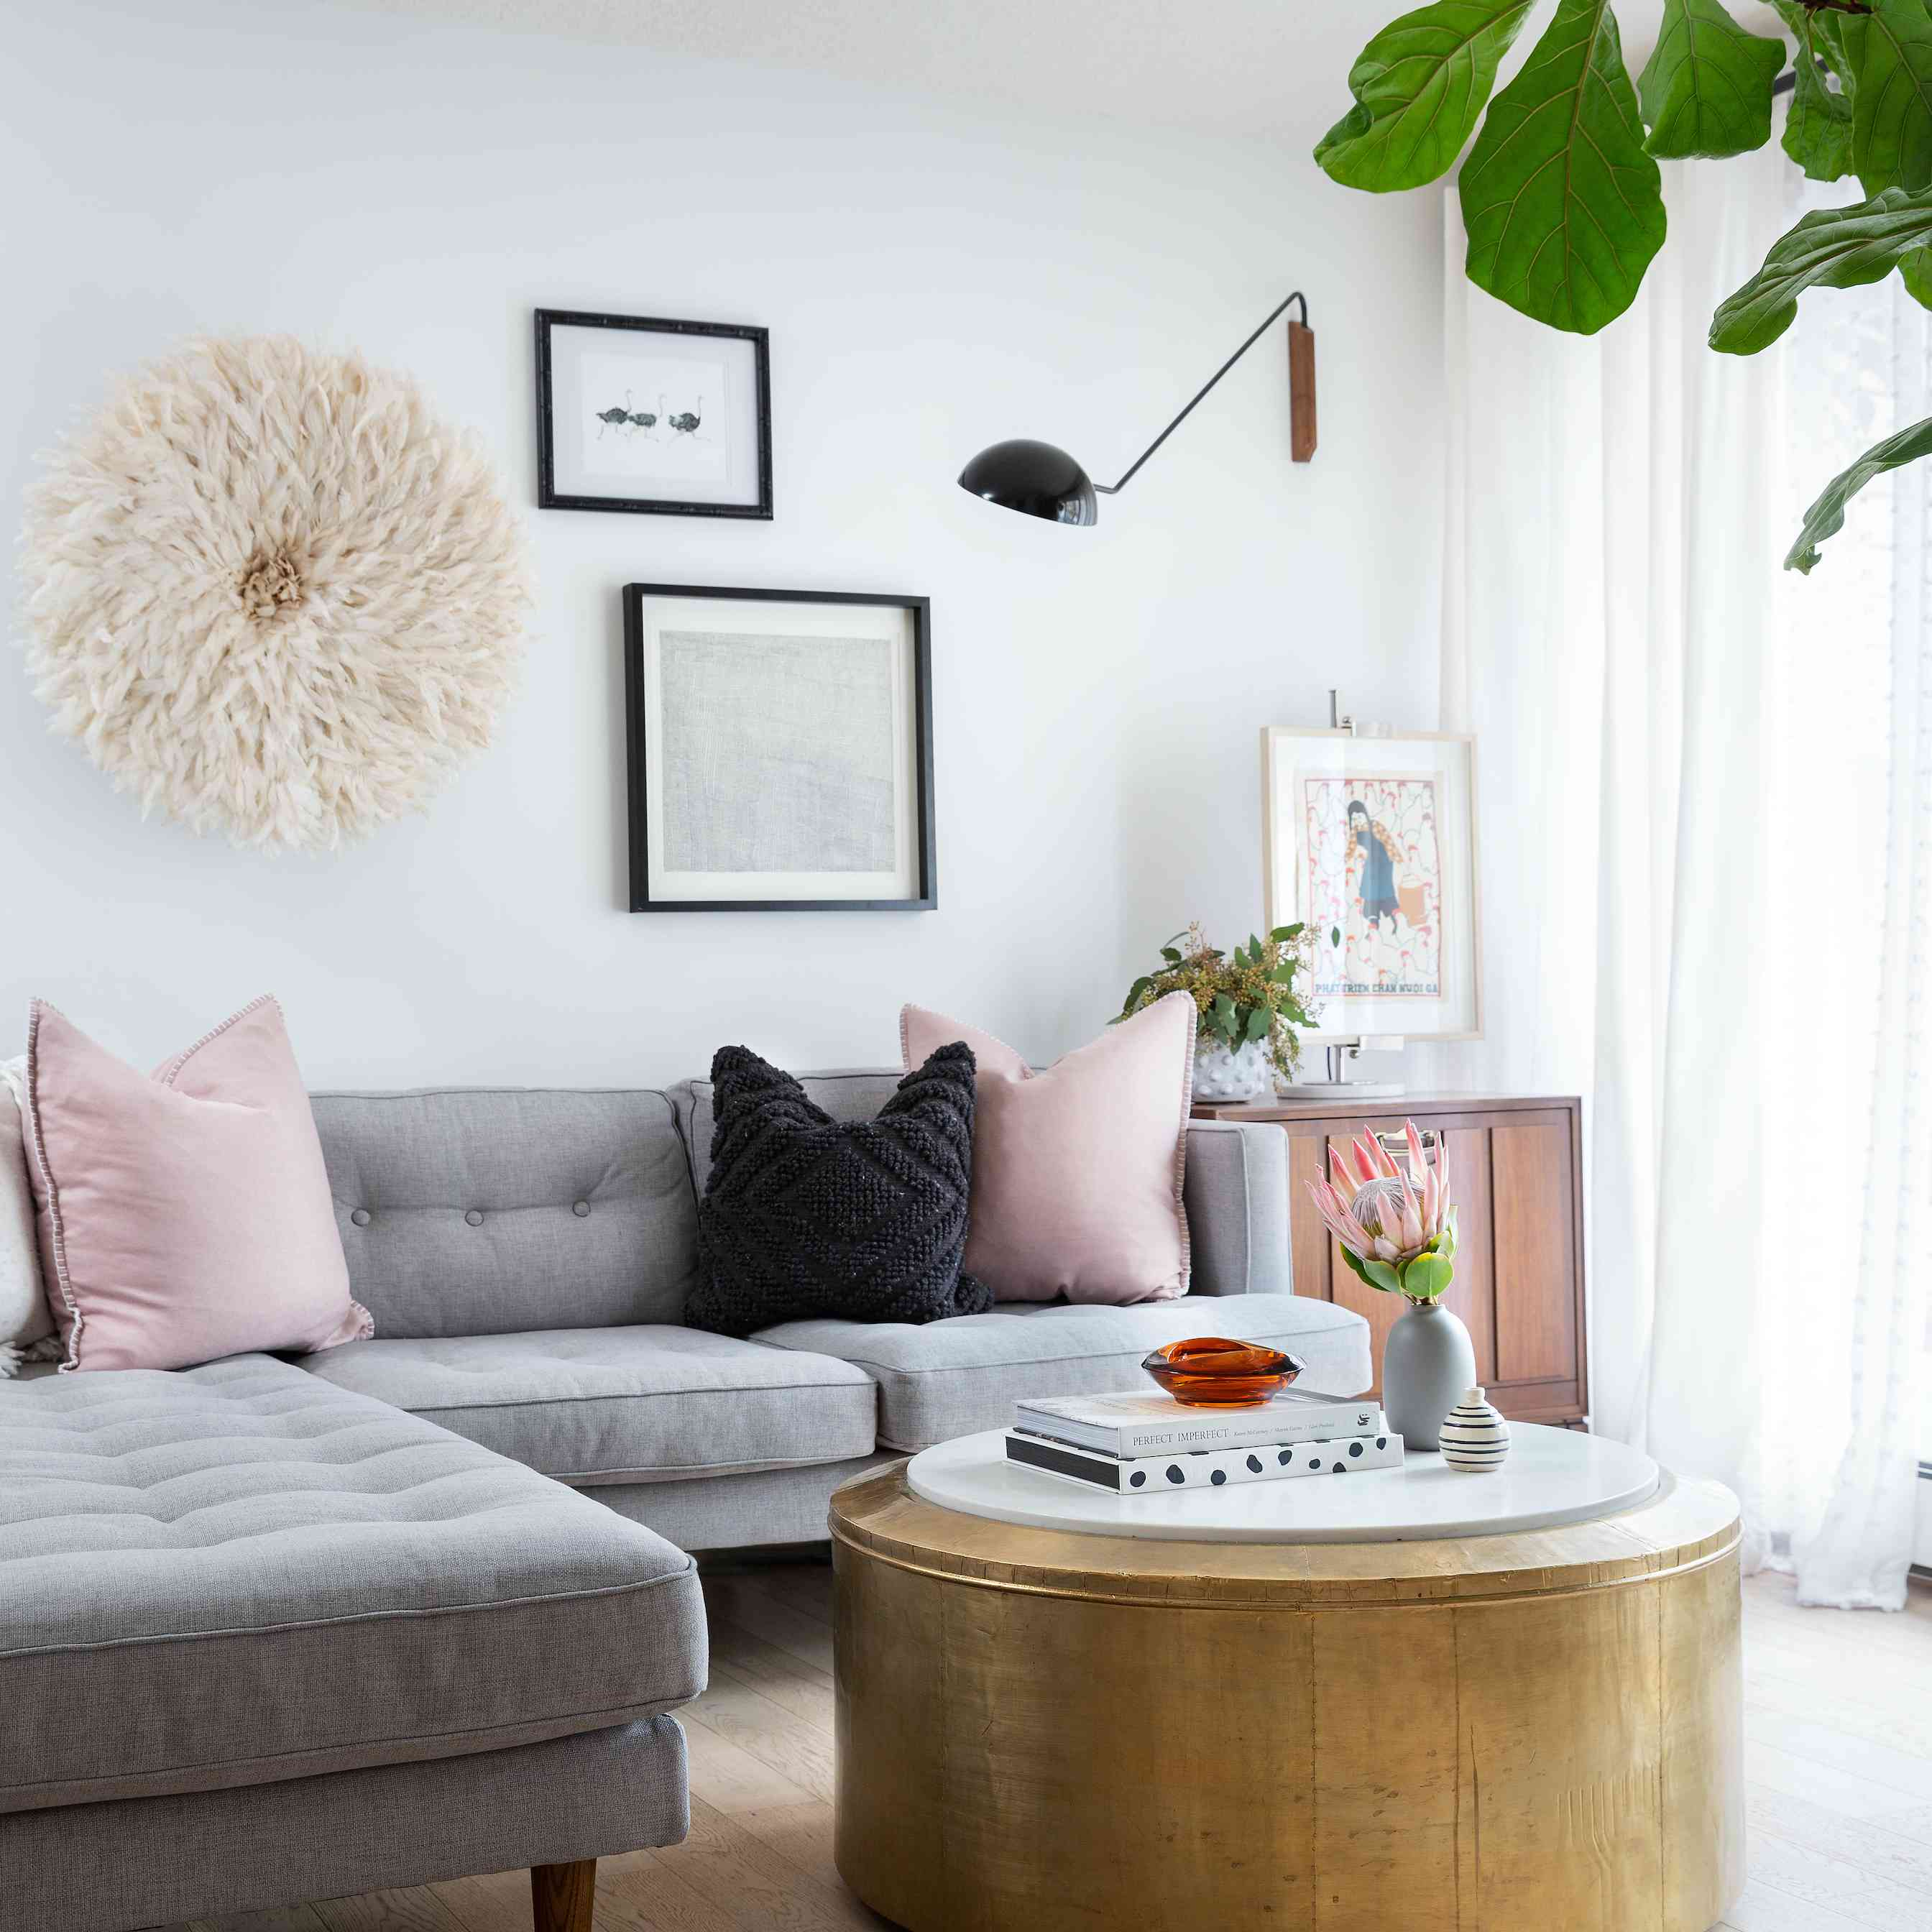 Living room with wall-mounted lamp